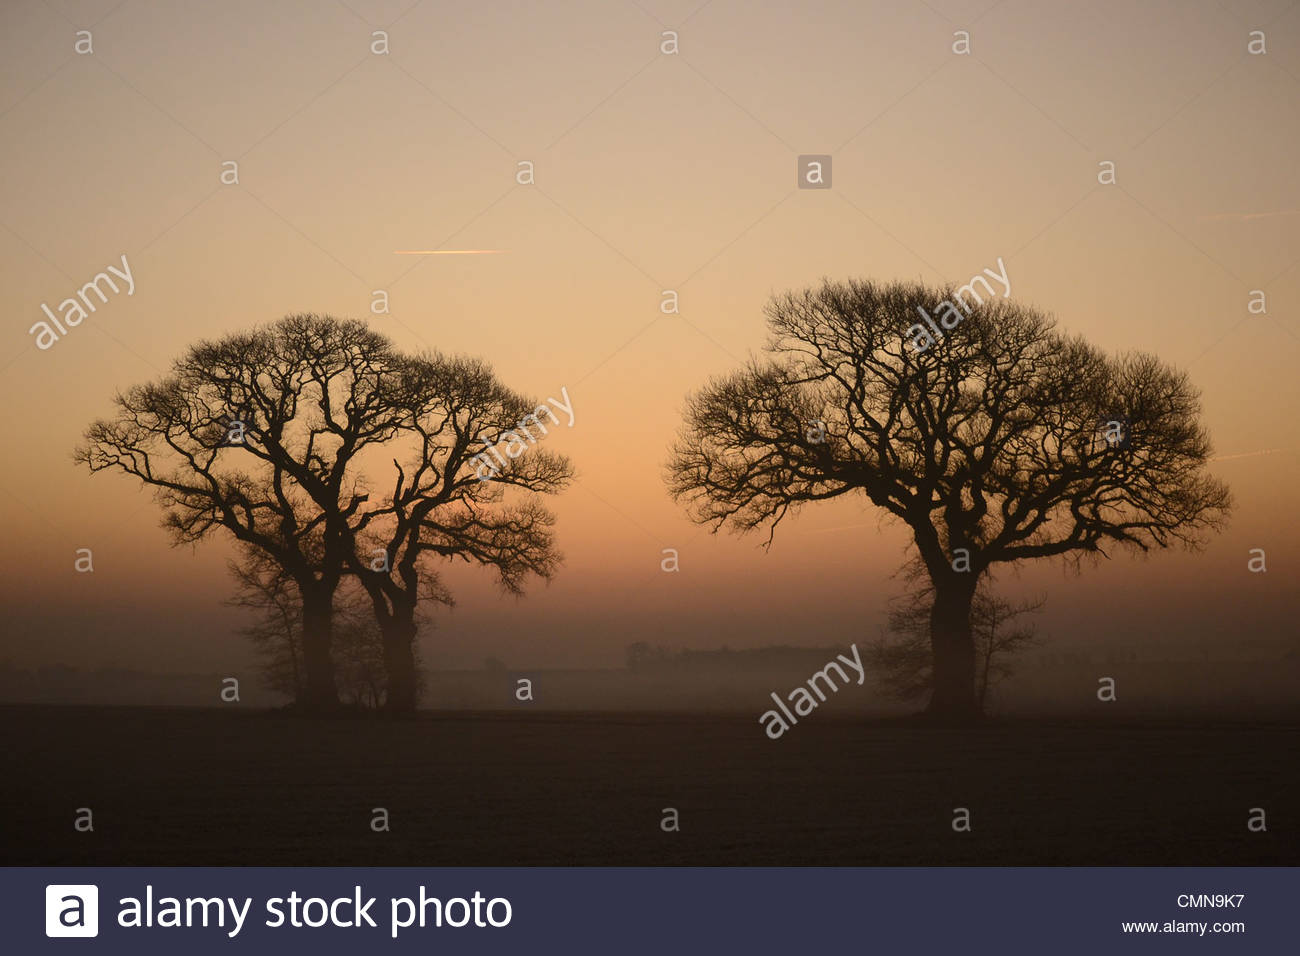 Two trees silhouetted against an orange sky just after sunrise near Godmanchester, Cambridgeshire, England, UK on - Stock Image